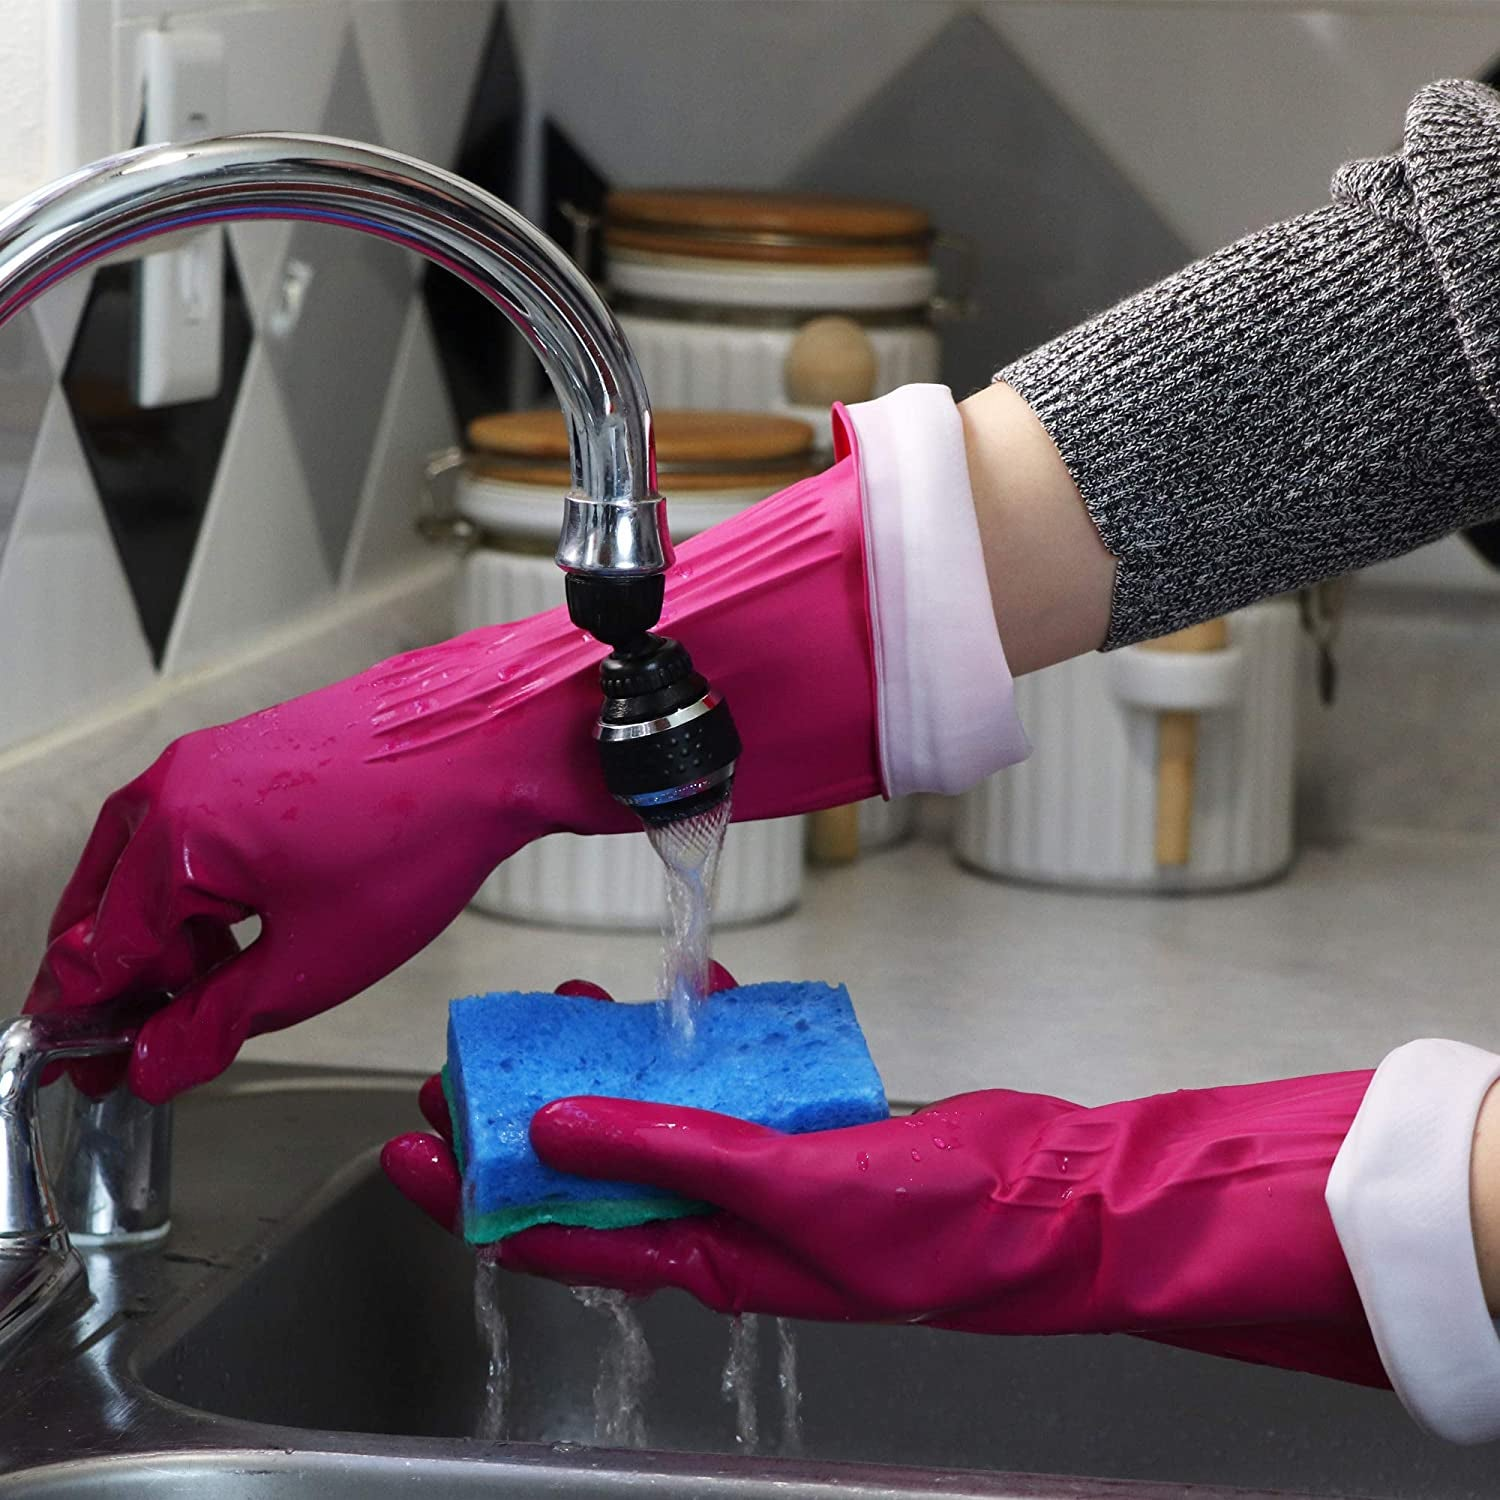 person wearing gloves while washing dishes